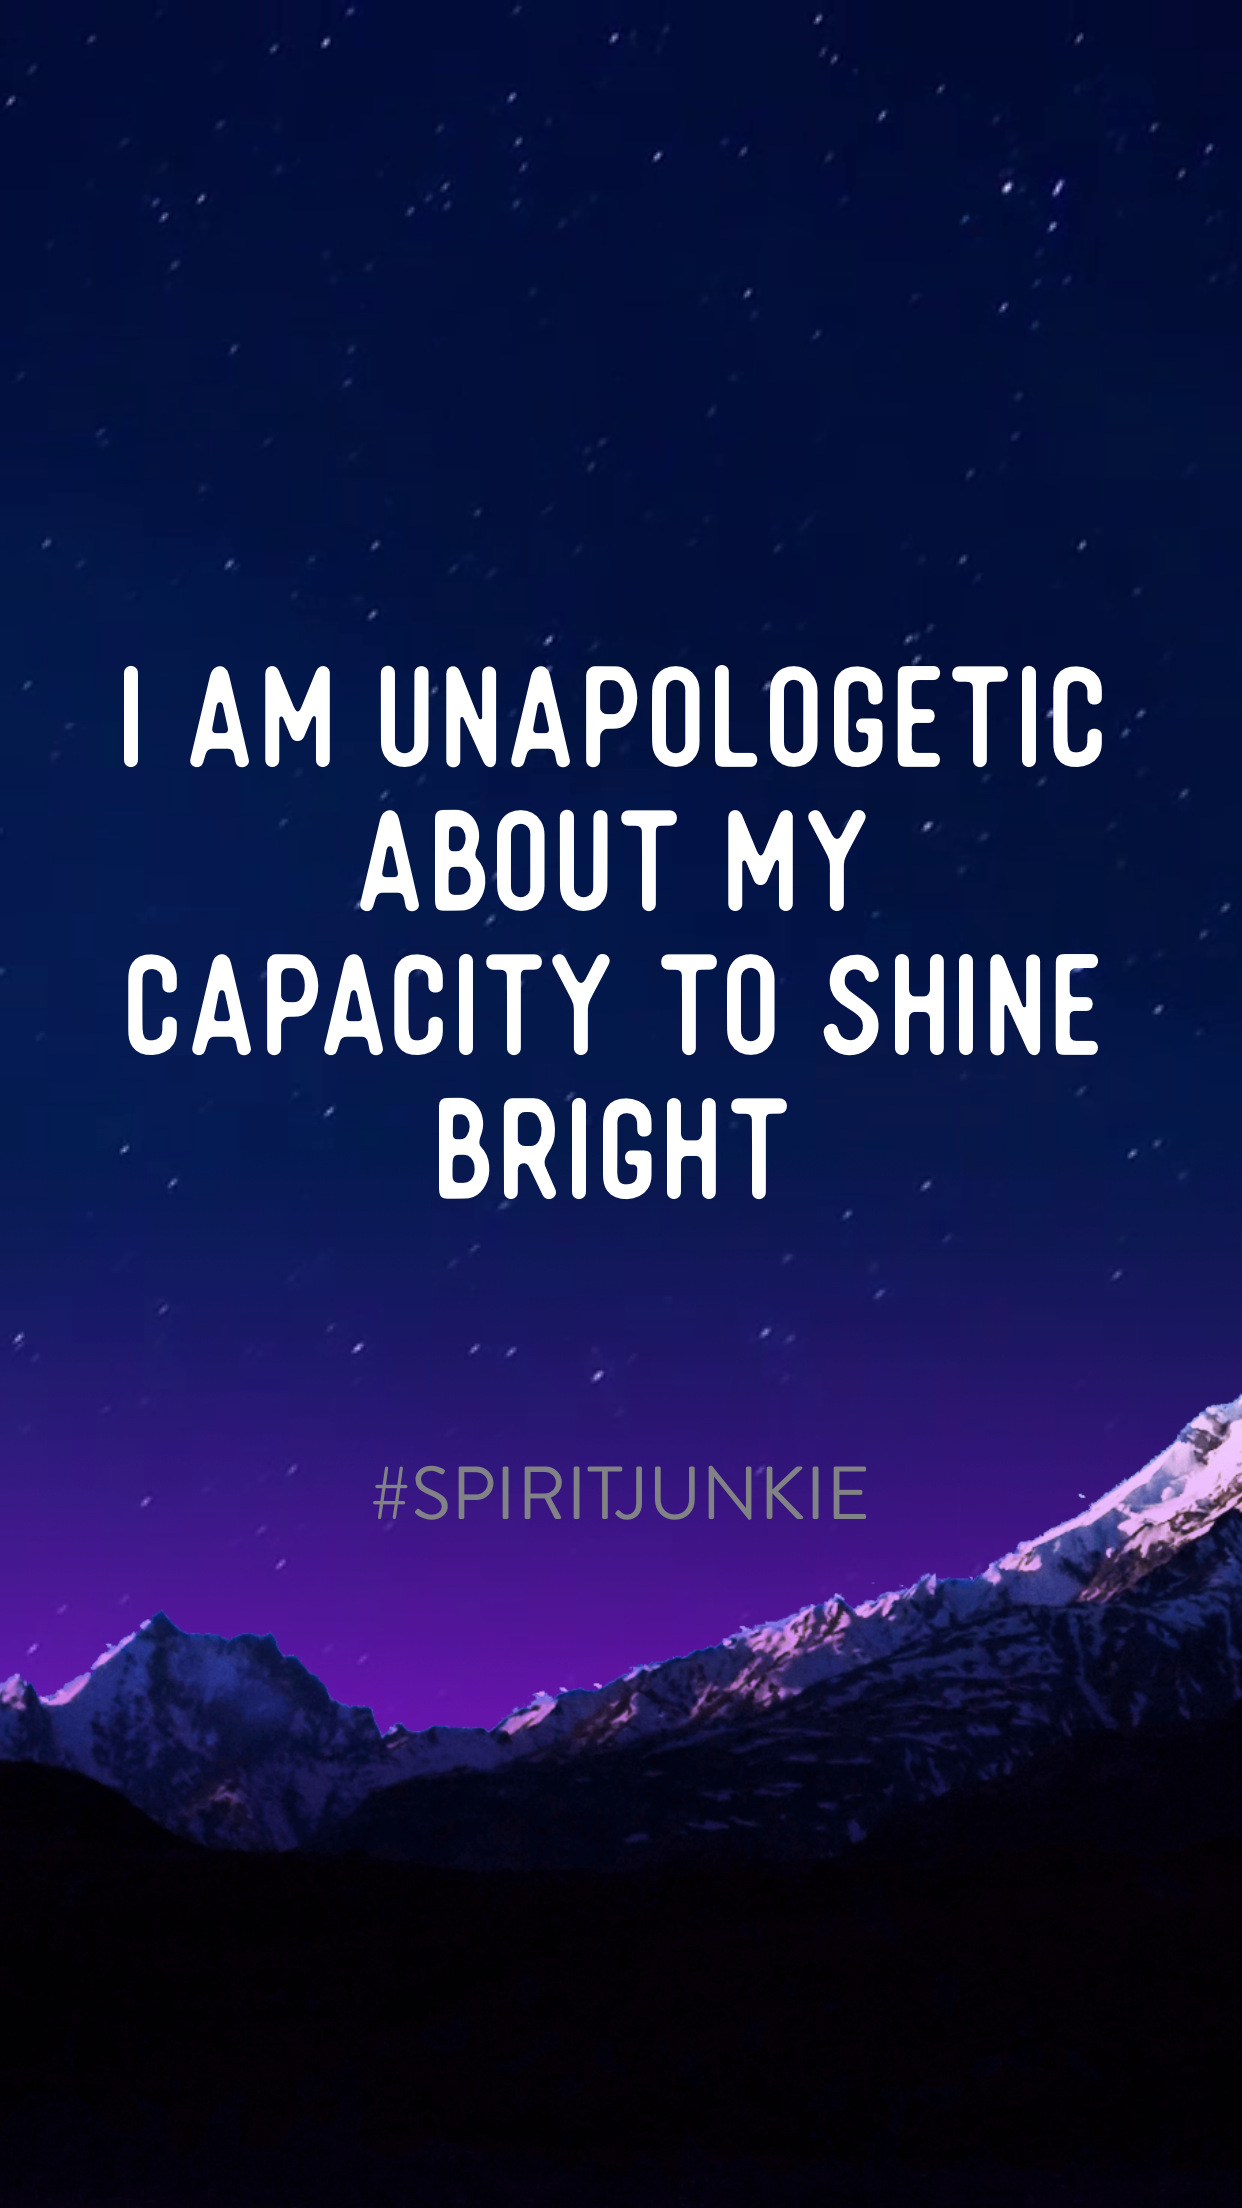 I am unapologetic about my capacity to shine bright | Spirit Junkie App by Gabby Bernstein | How to be more confident